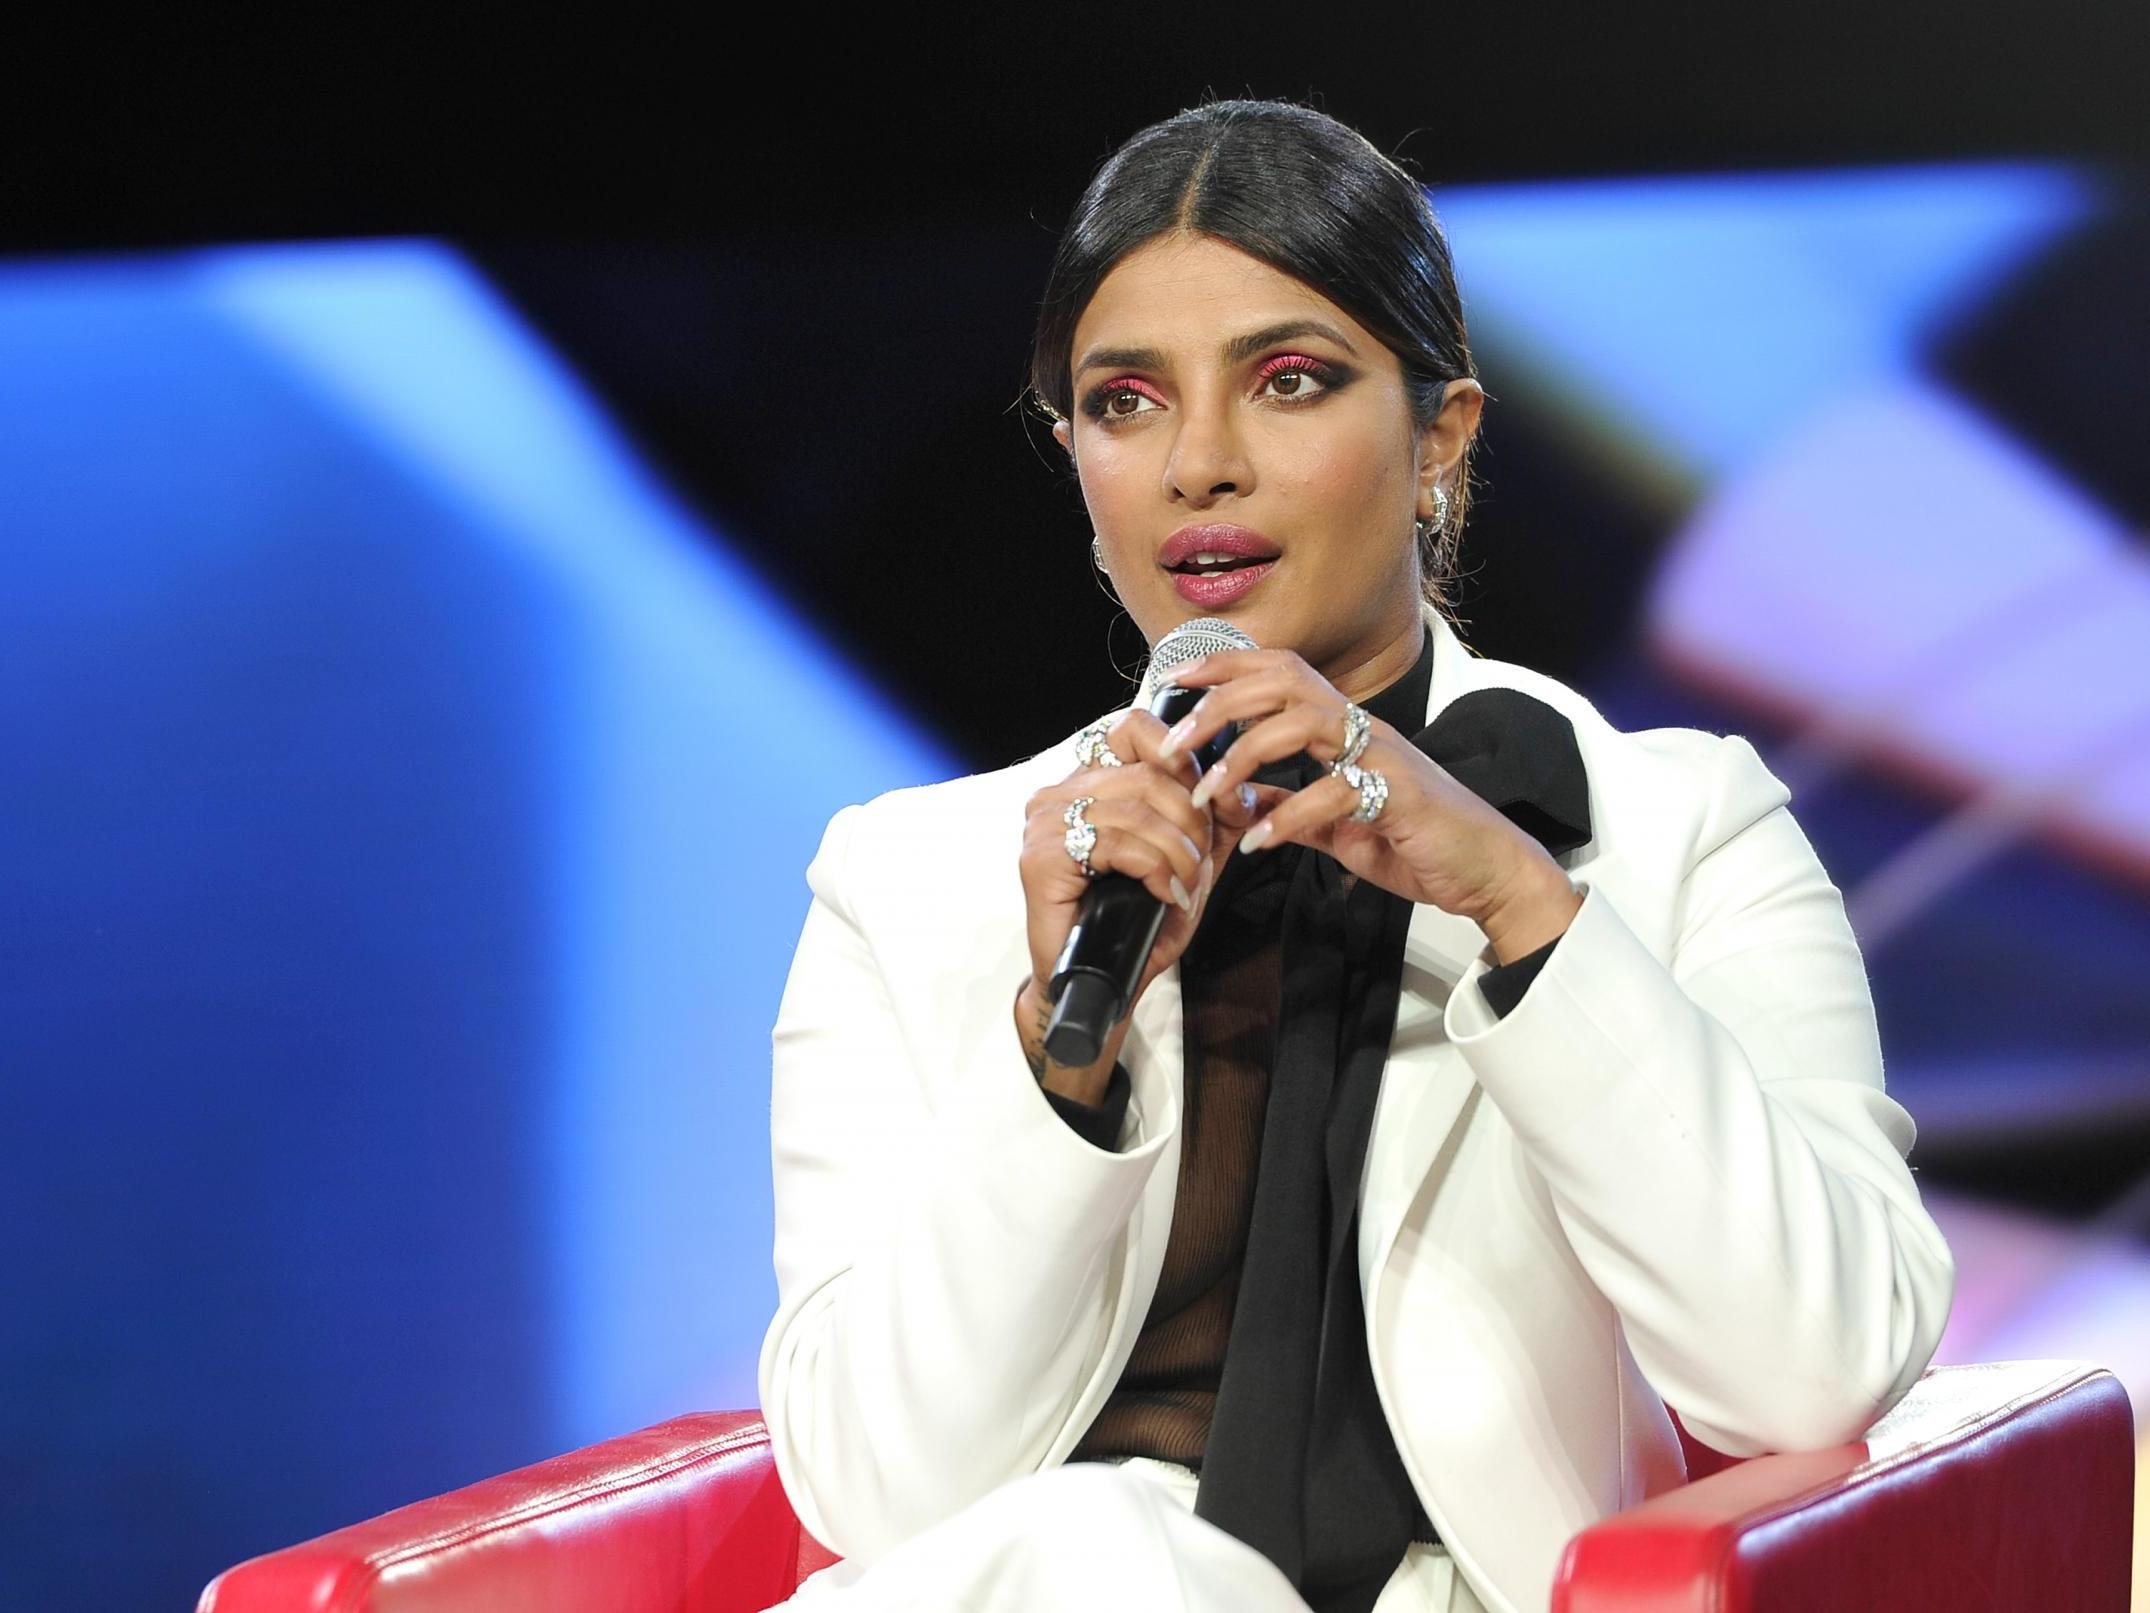 Priyanka Chopra gaslit me at BeautyCon for criticising her over her 'Jai Hind' tweets – this is why I called her out